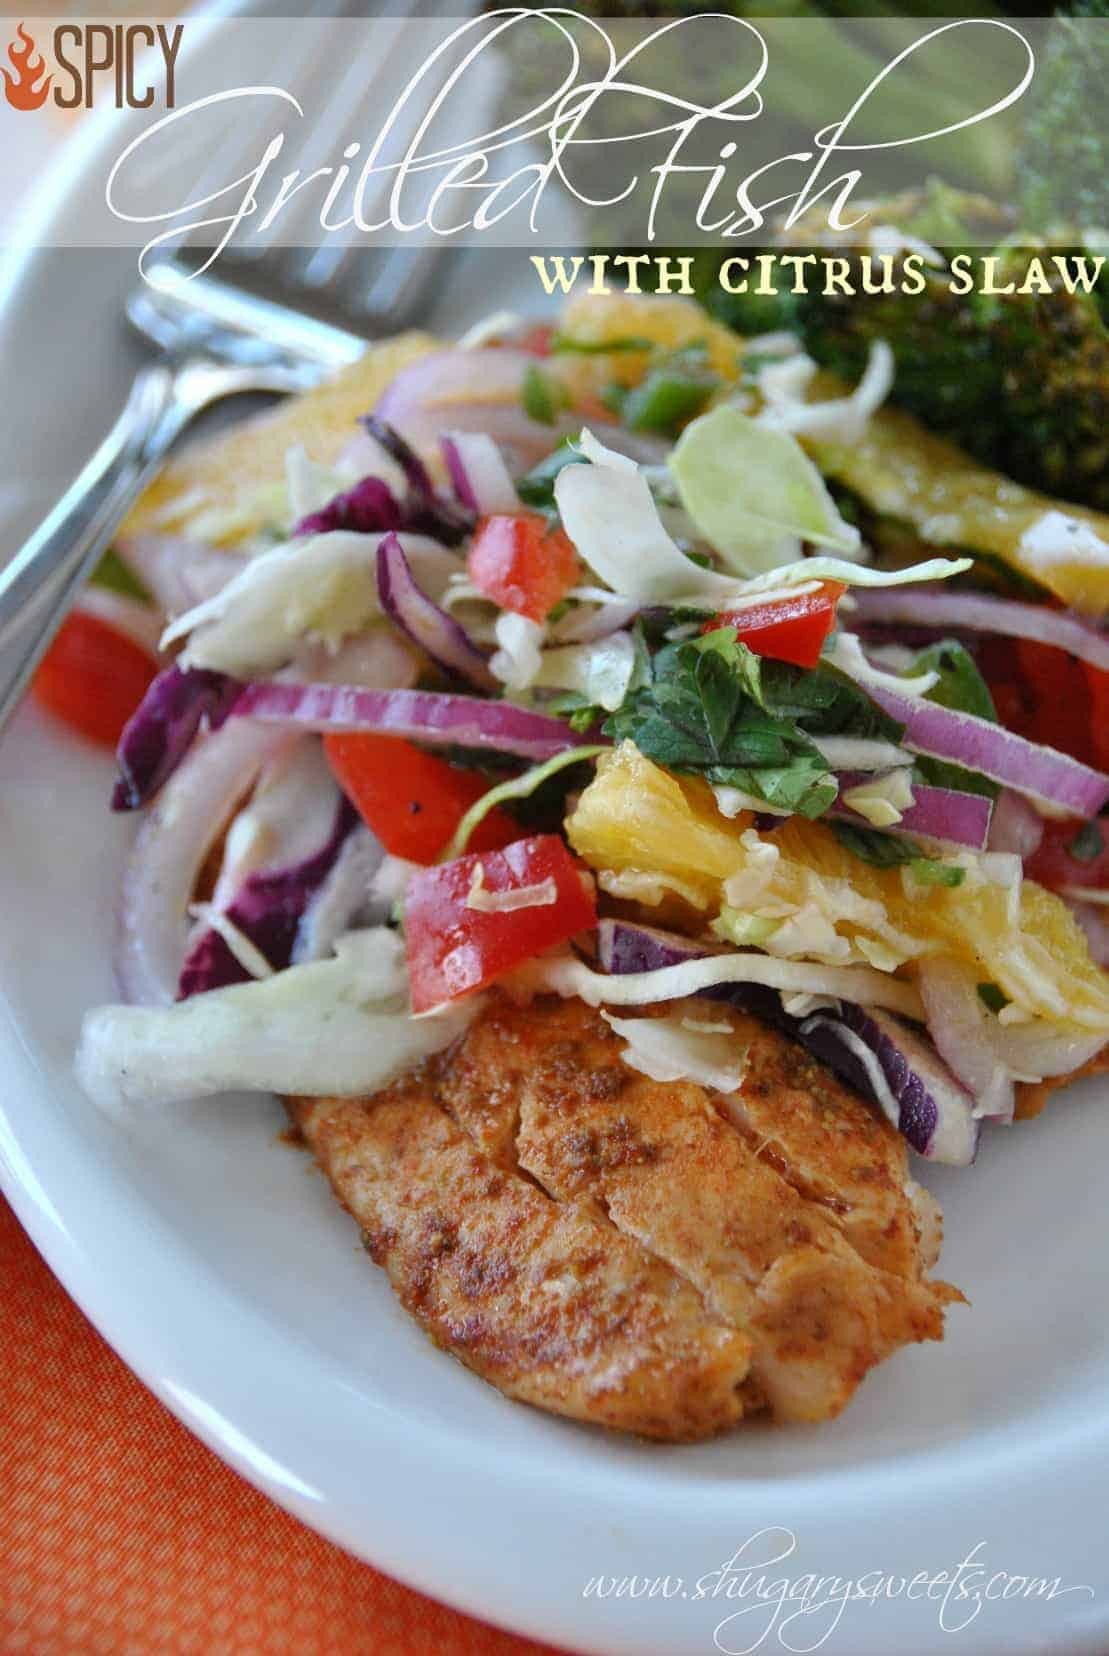 Healthy Grilled Dinners  Spicy Grilled Fish with Citrus Slaw a delicious and